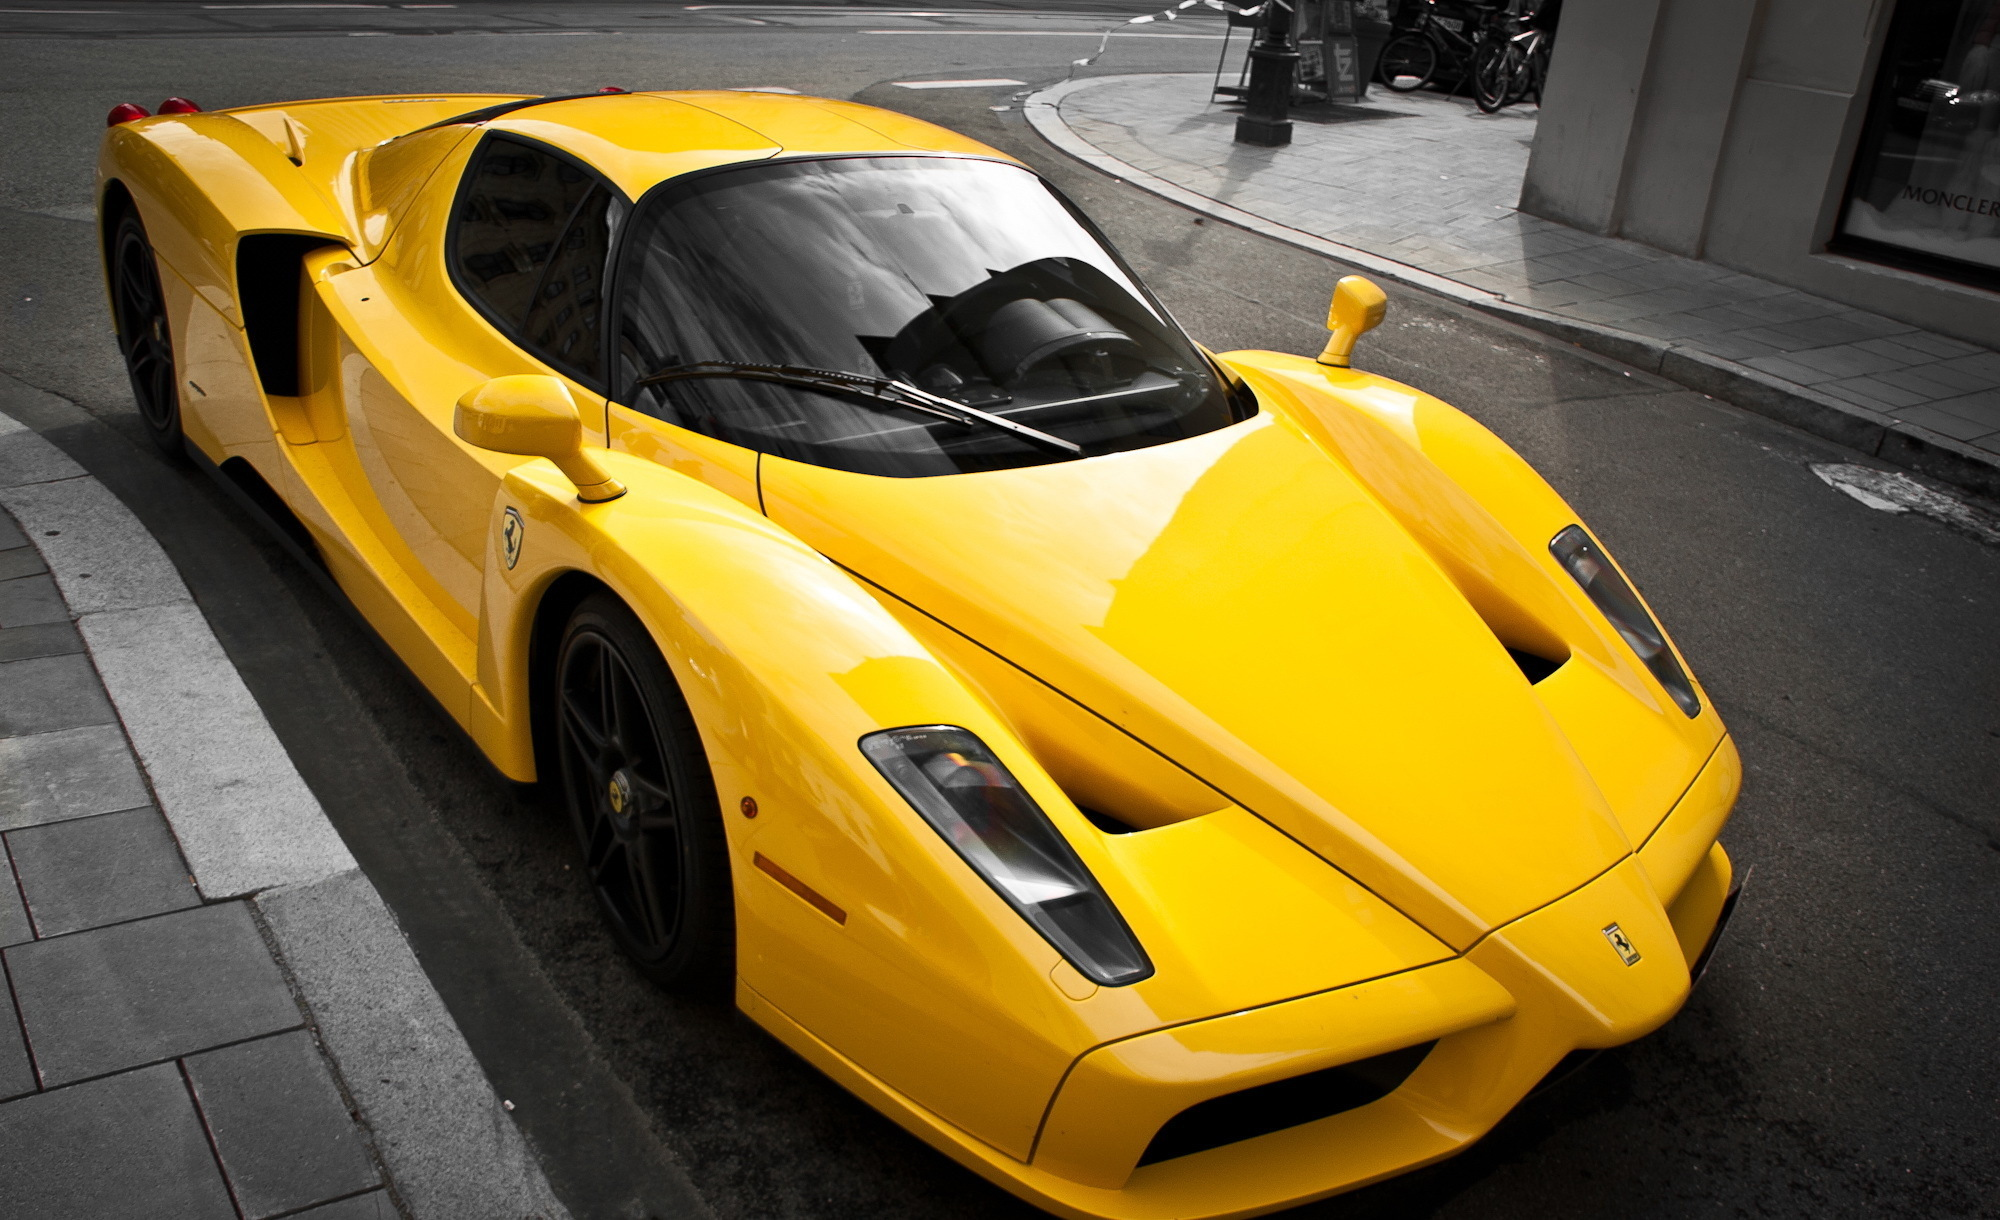 Ferrari Enzo Luxury Yellow Supercar Tuning